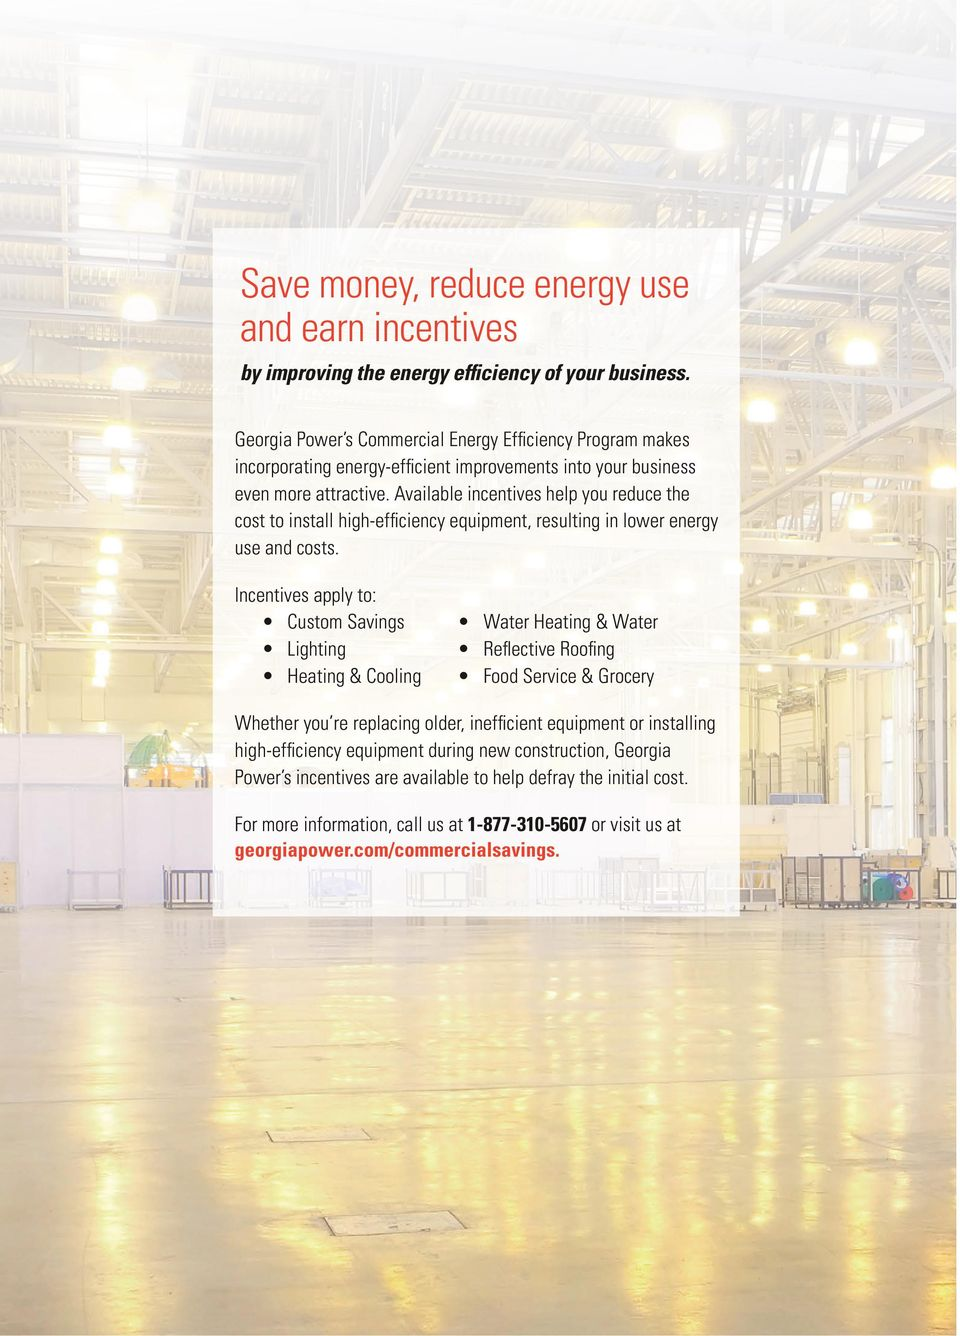 Available incentives help you reduce the cost to install high-efficiency equipment, resulting in lower energy use and costs.